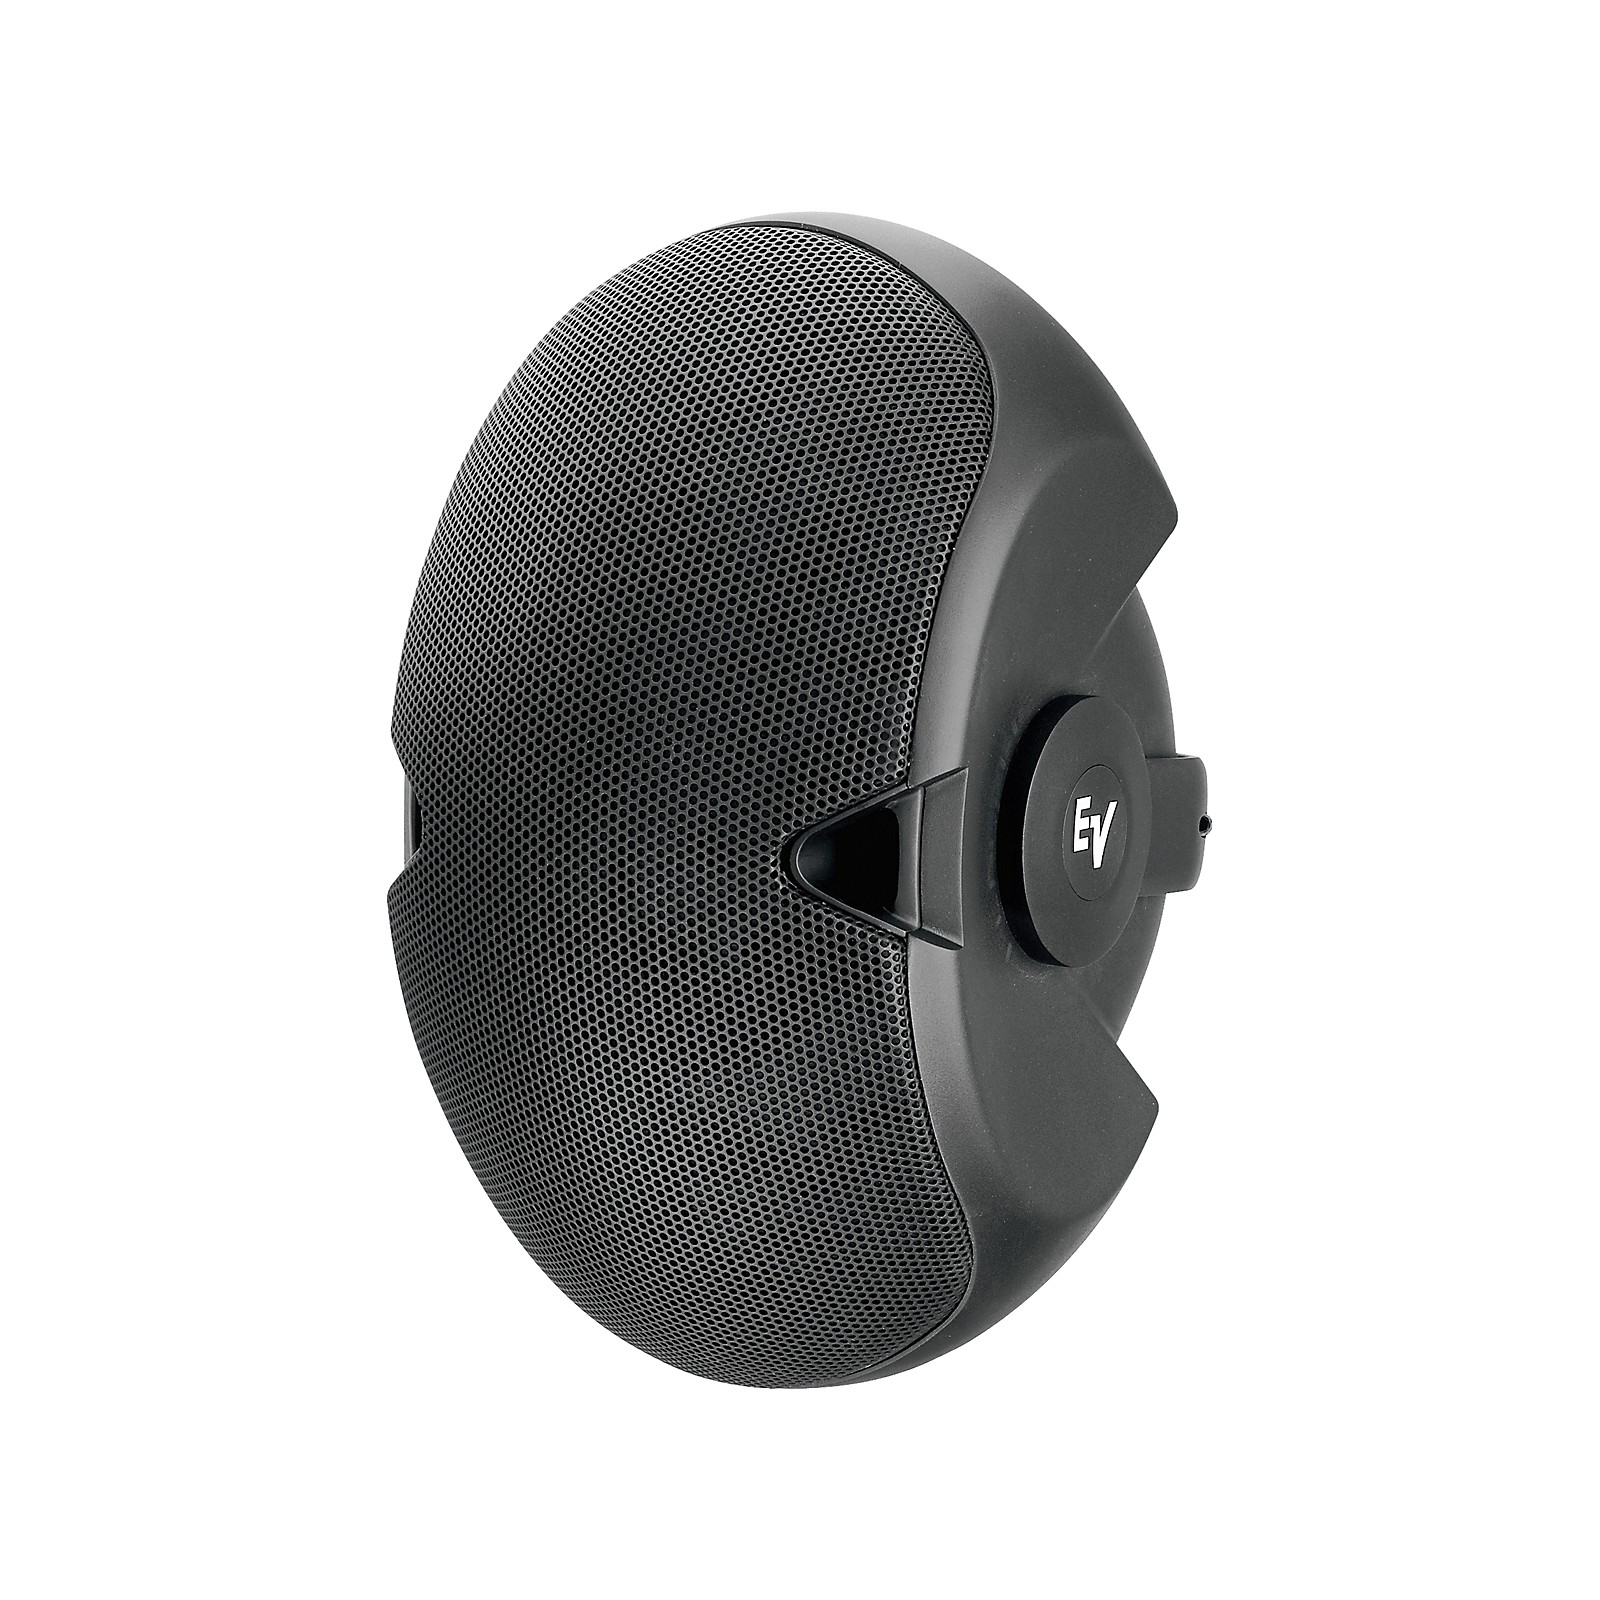 Electro-Voice EVID 3.2 Series Wall Mount Speakers